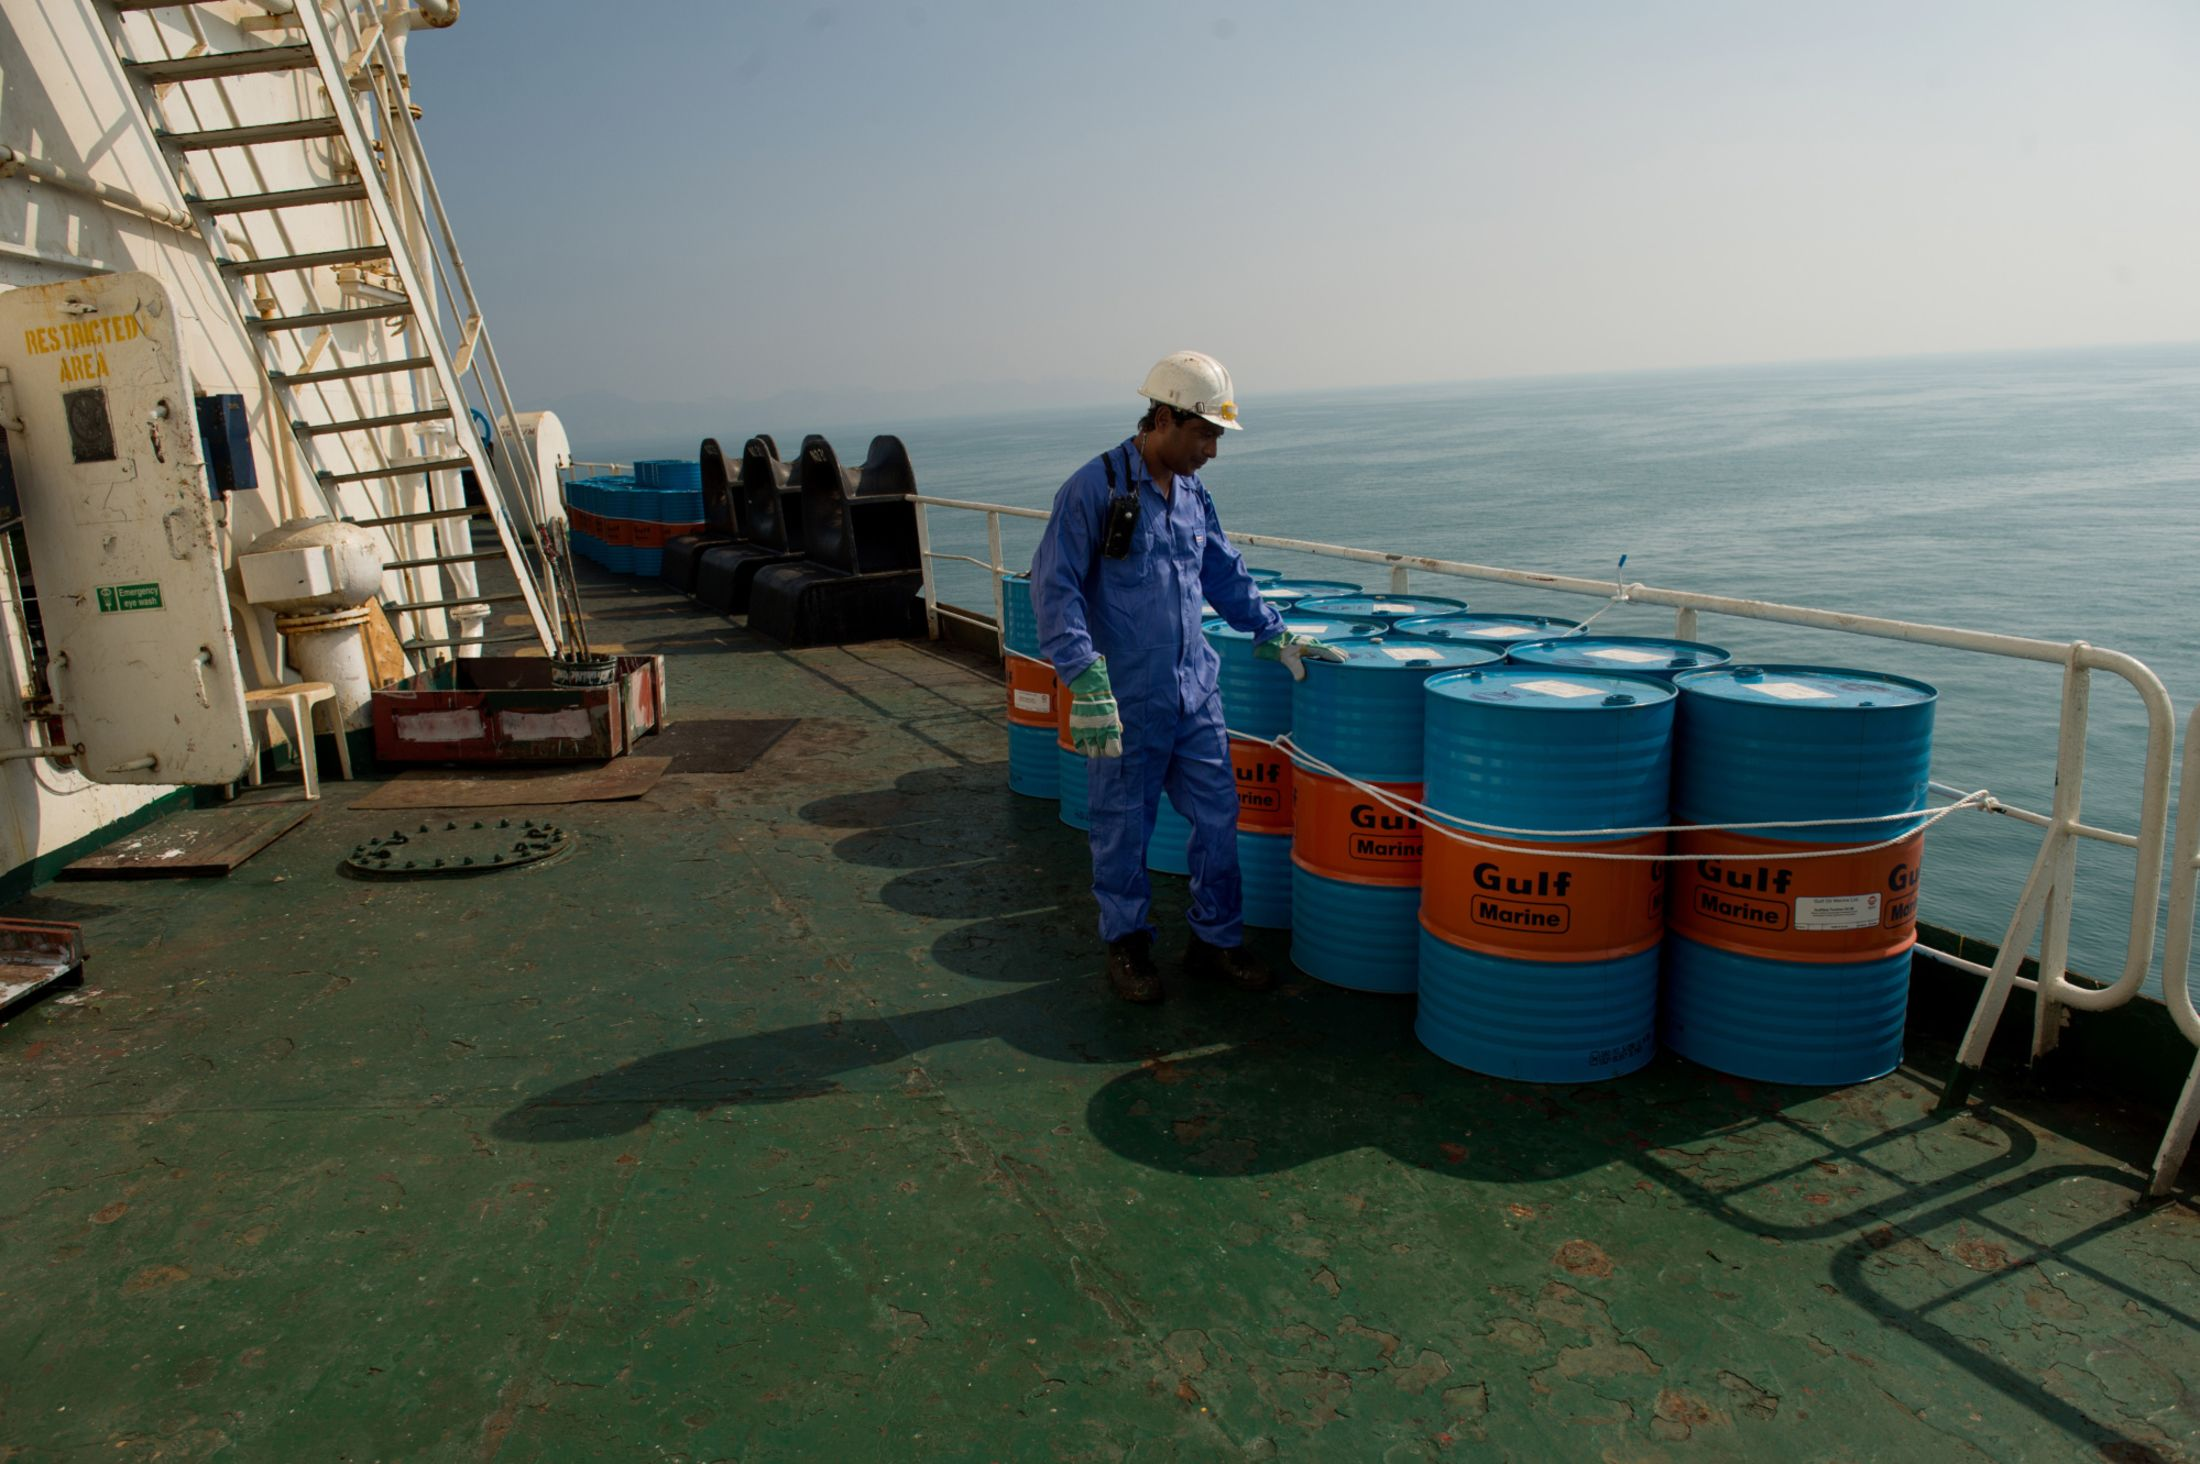 A crew man secures oil drums on the deck near Kharq Island, Iran.